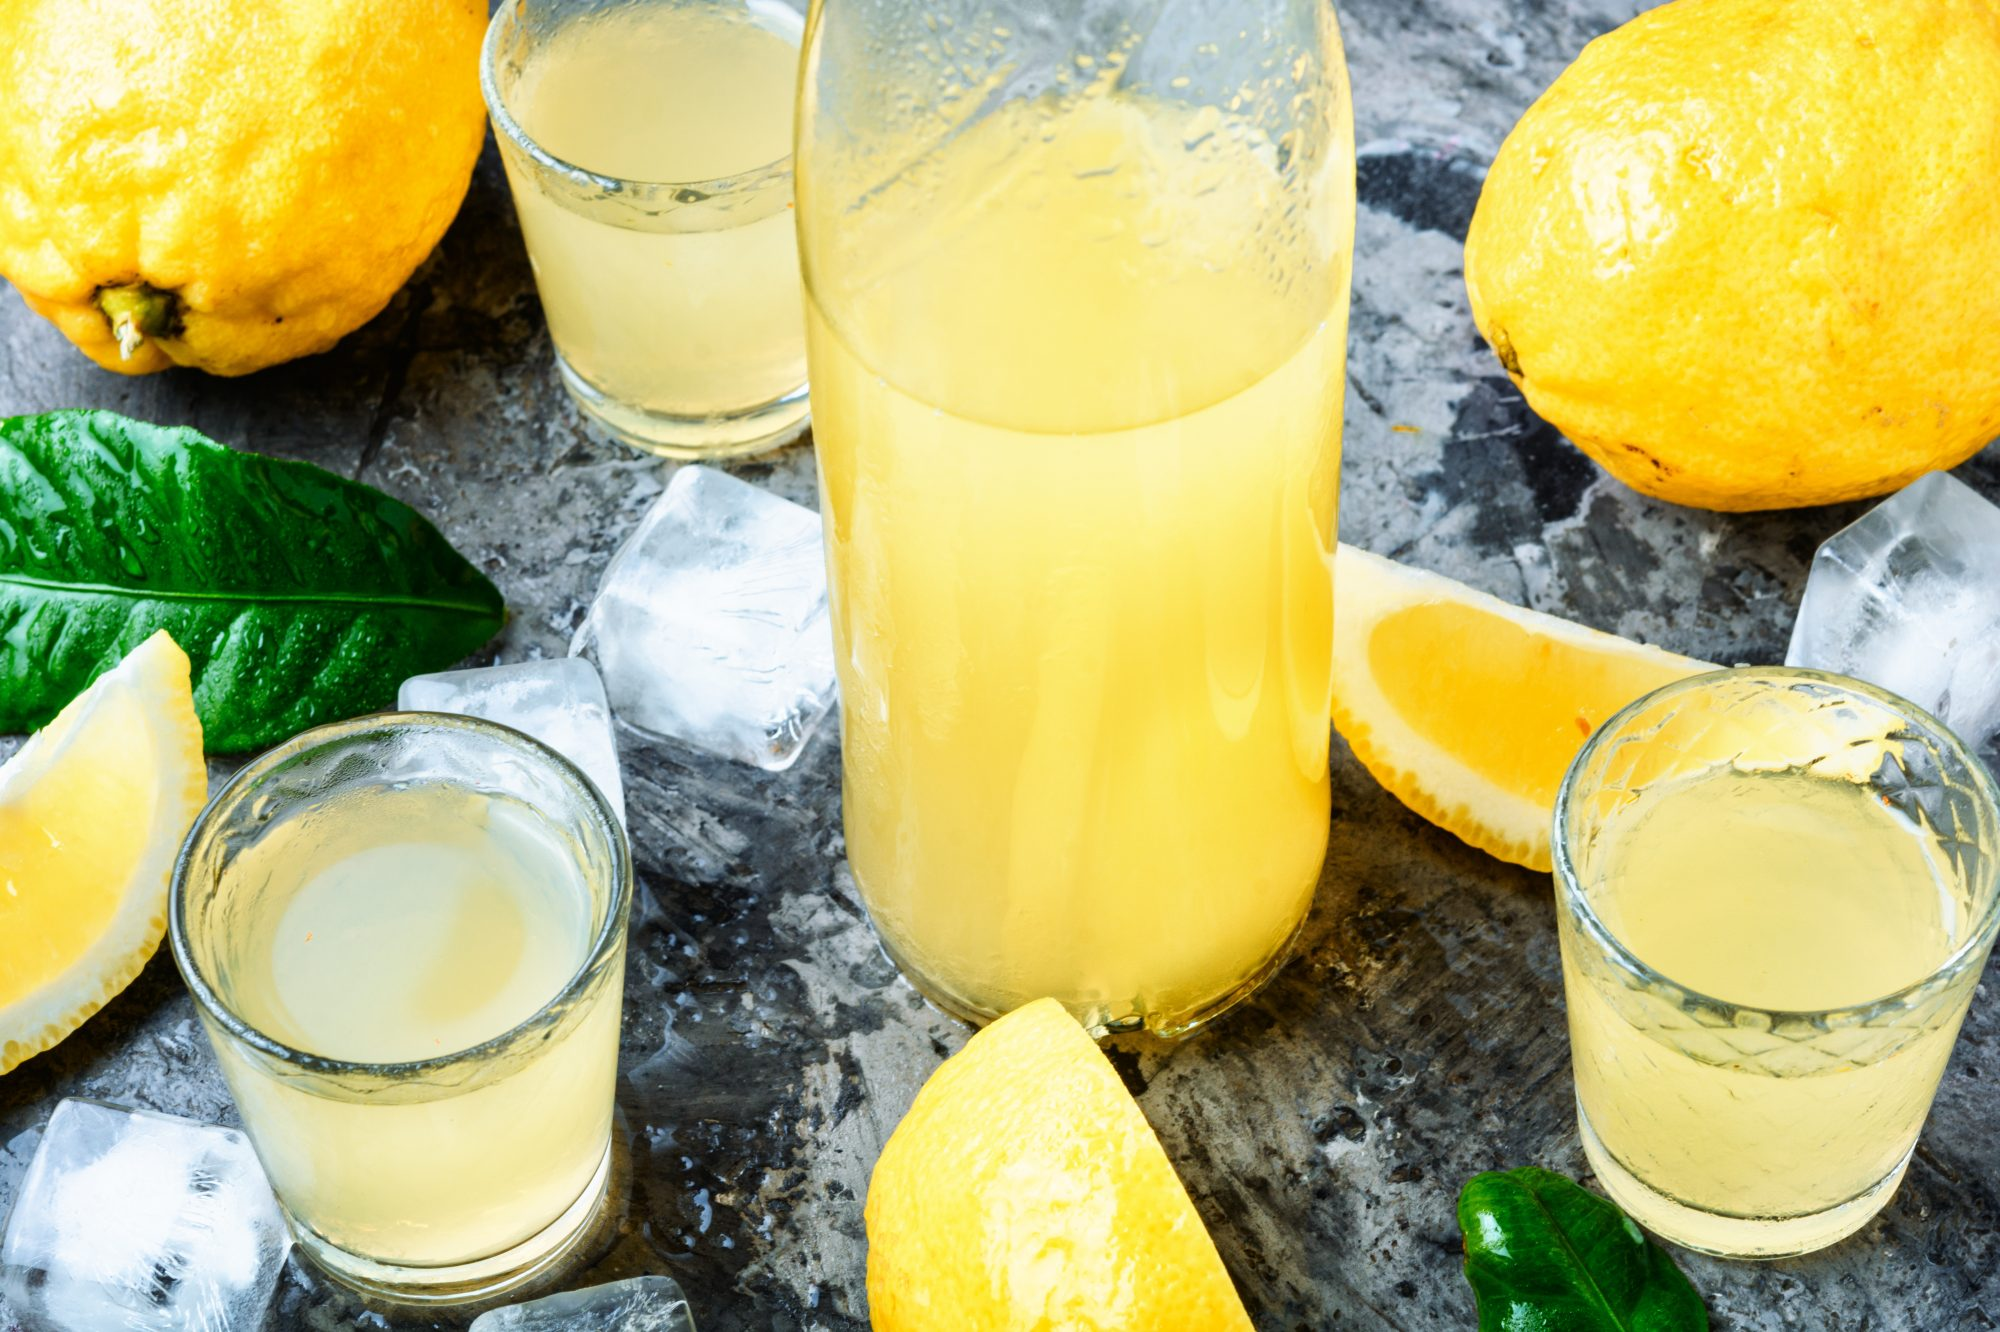 What Is Limoncello and How Is It Made?